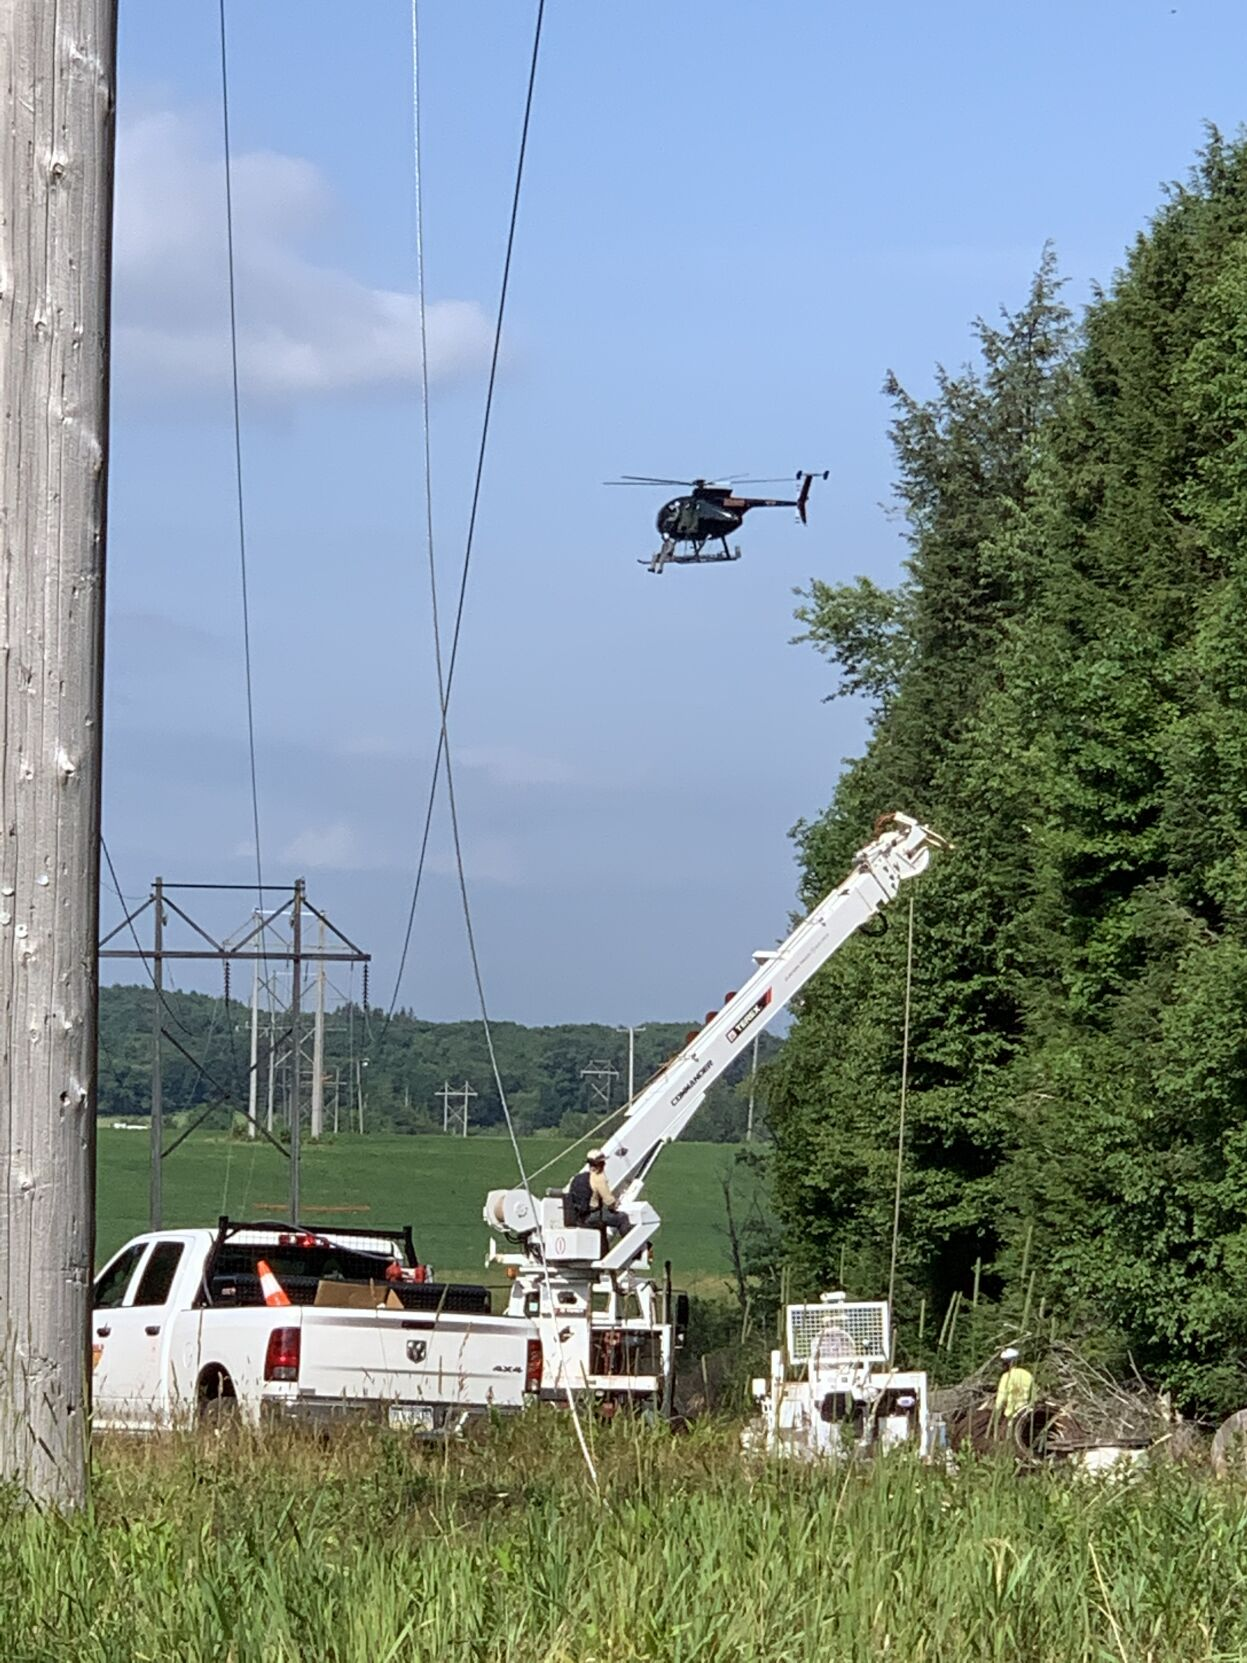 Helicopter at power lines